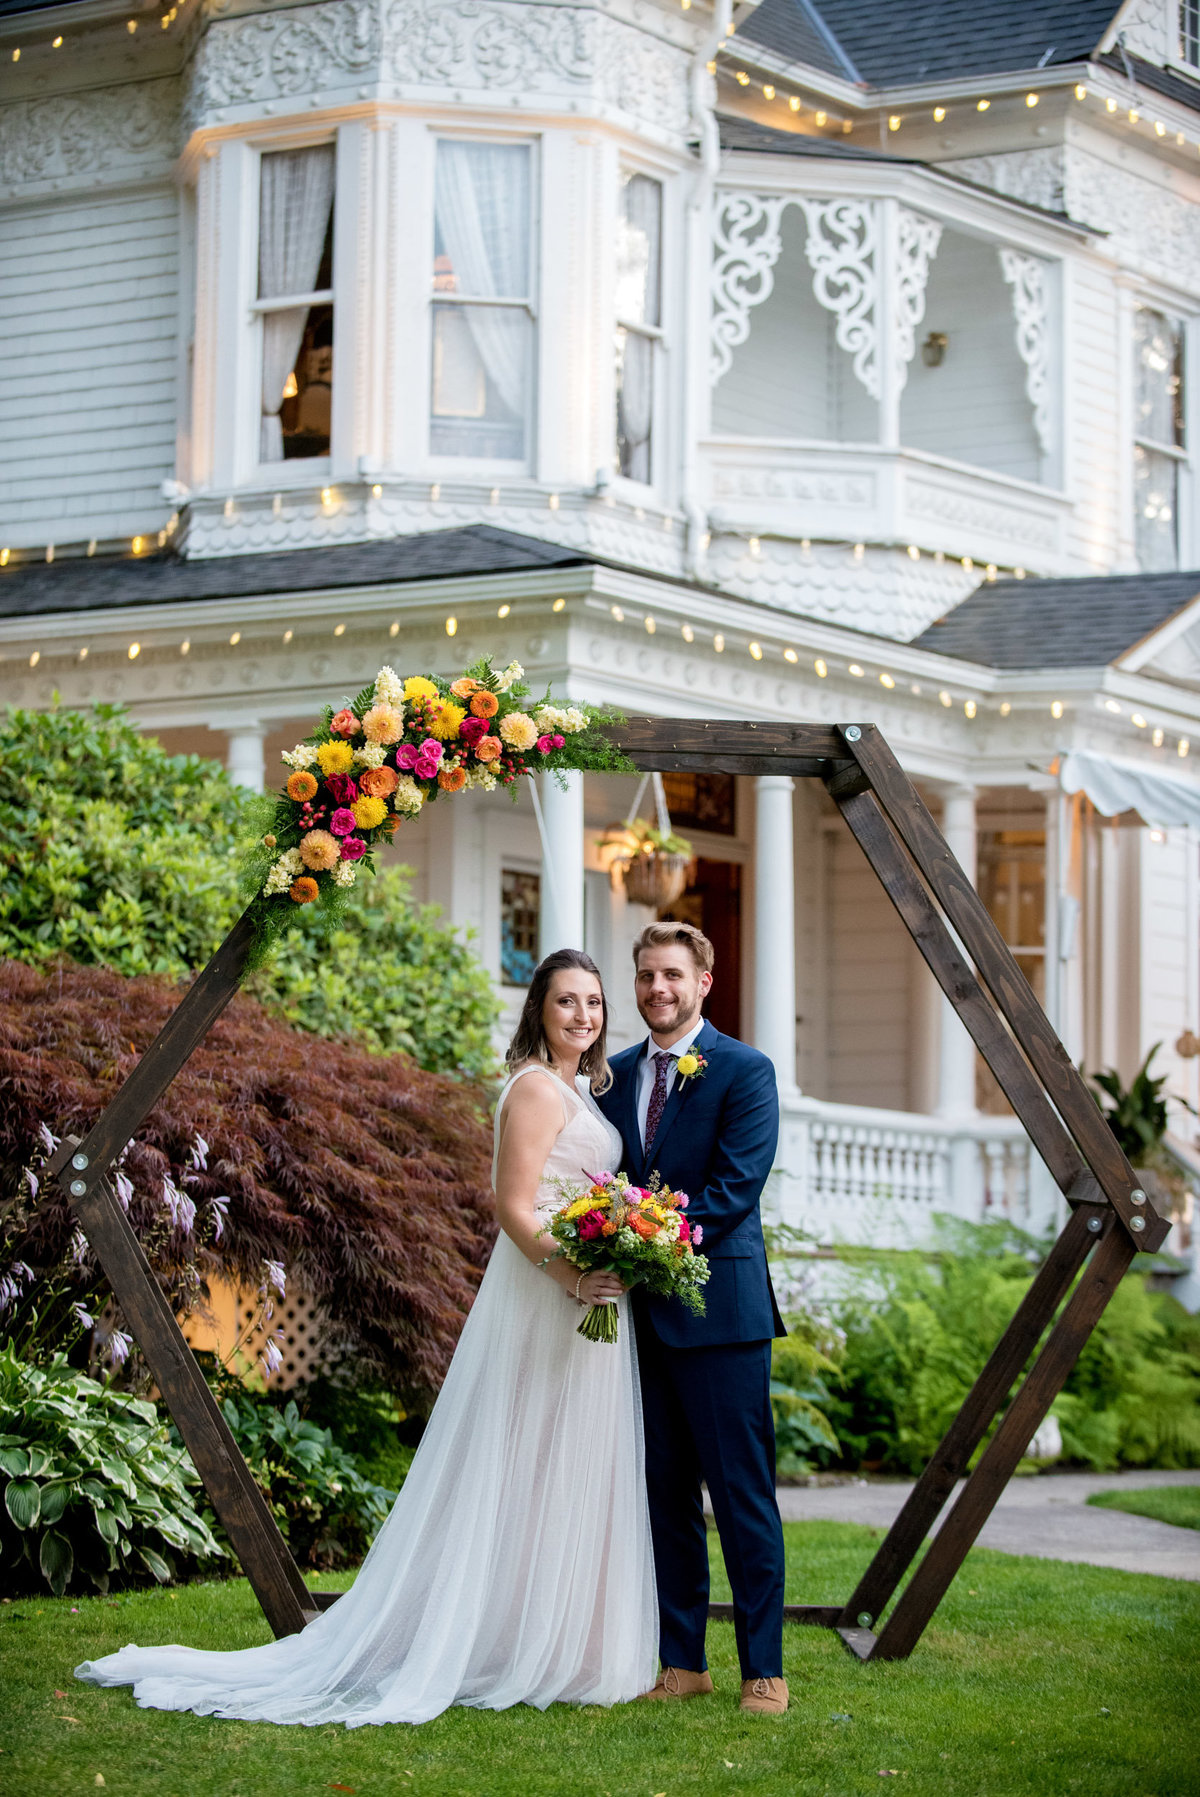 Victorian Belle Mansion Wedding190715-14